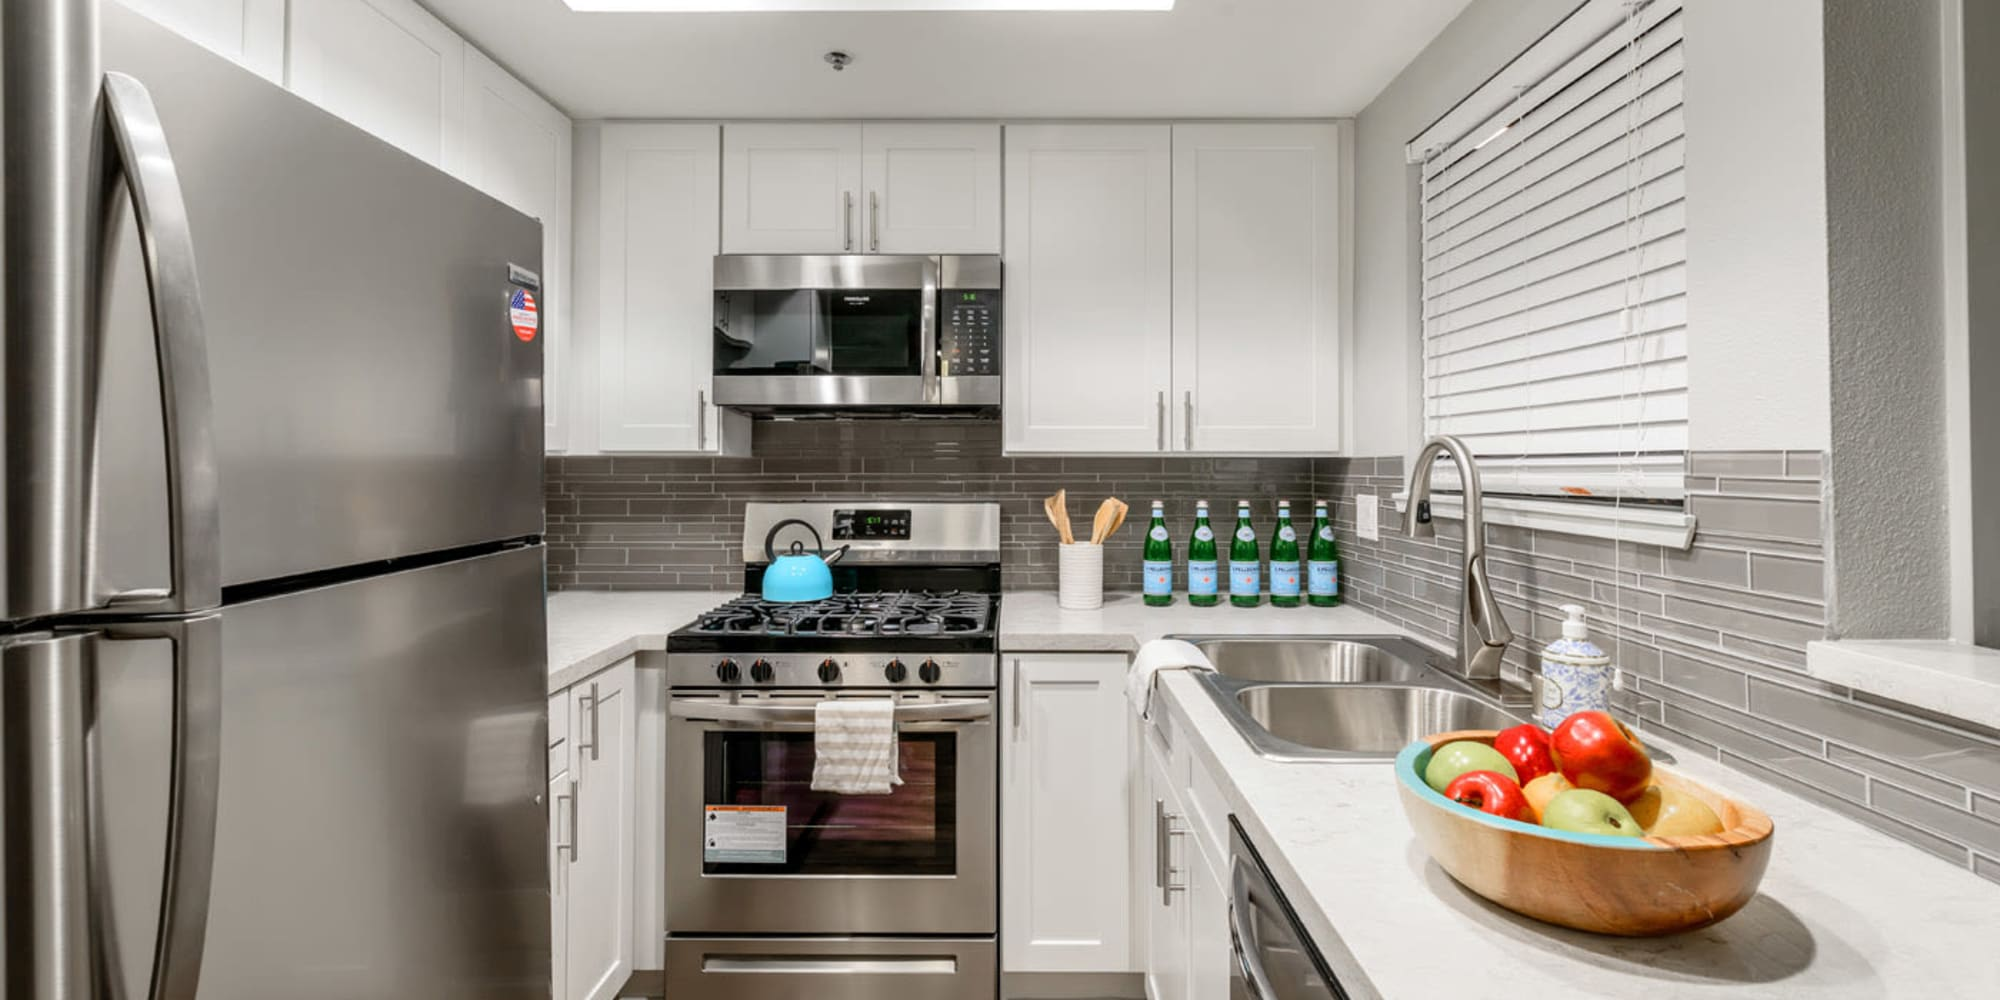 Stainless-steel appliances in a newly remodeled model home's kitchen at Sendero Huntington Beach in Huntington Beach, California